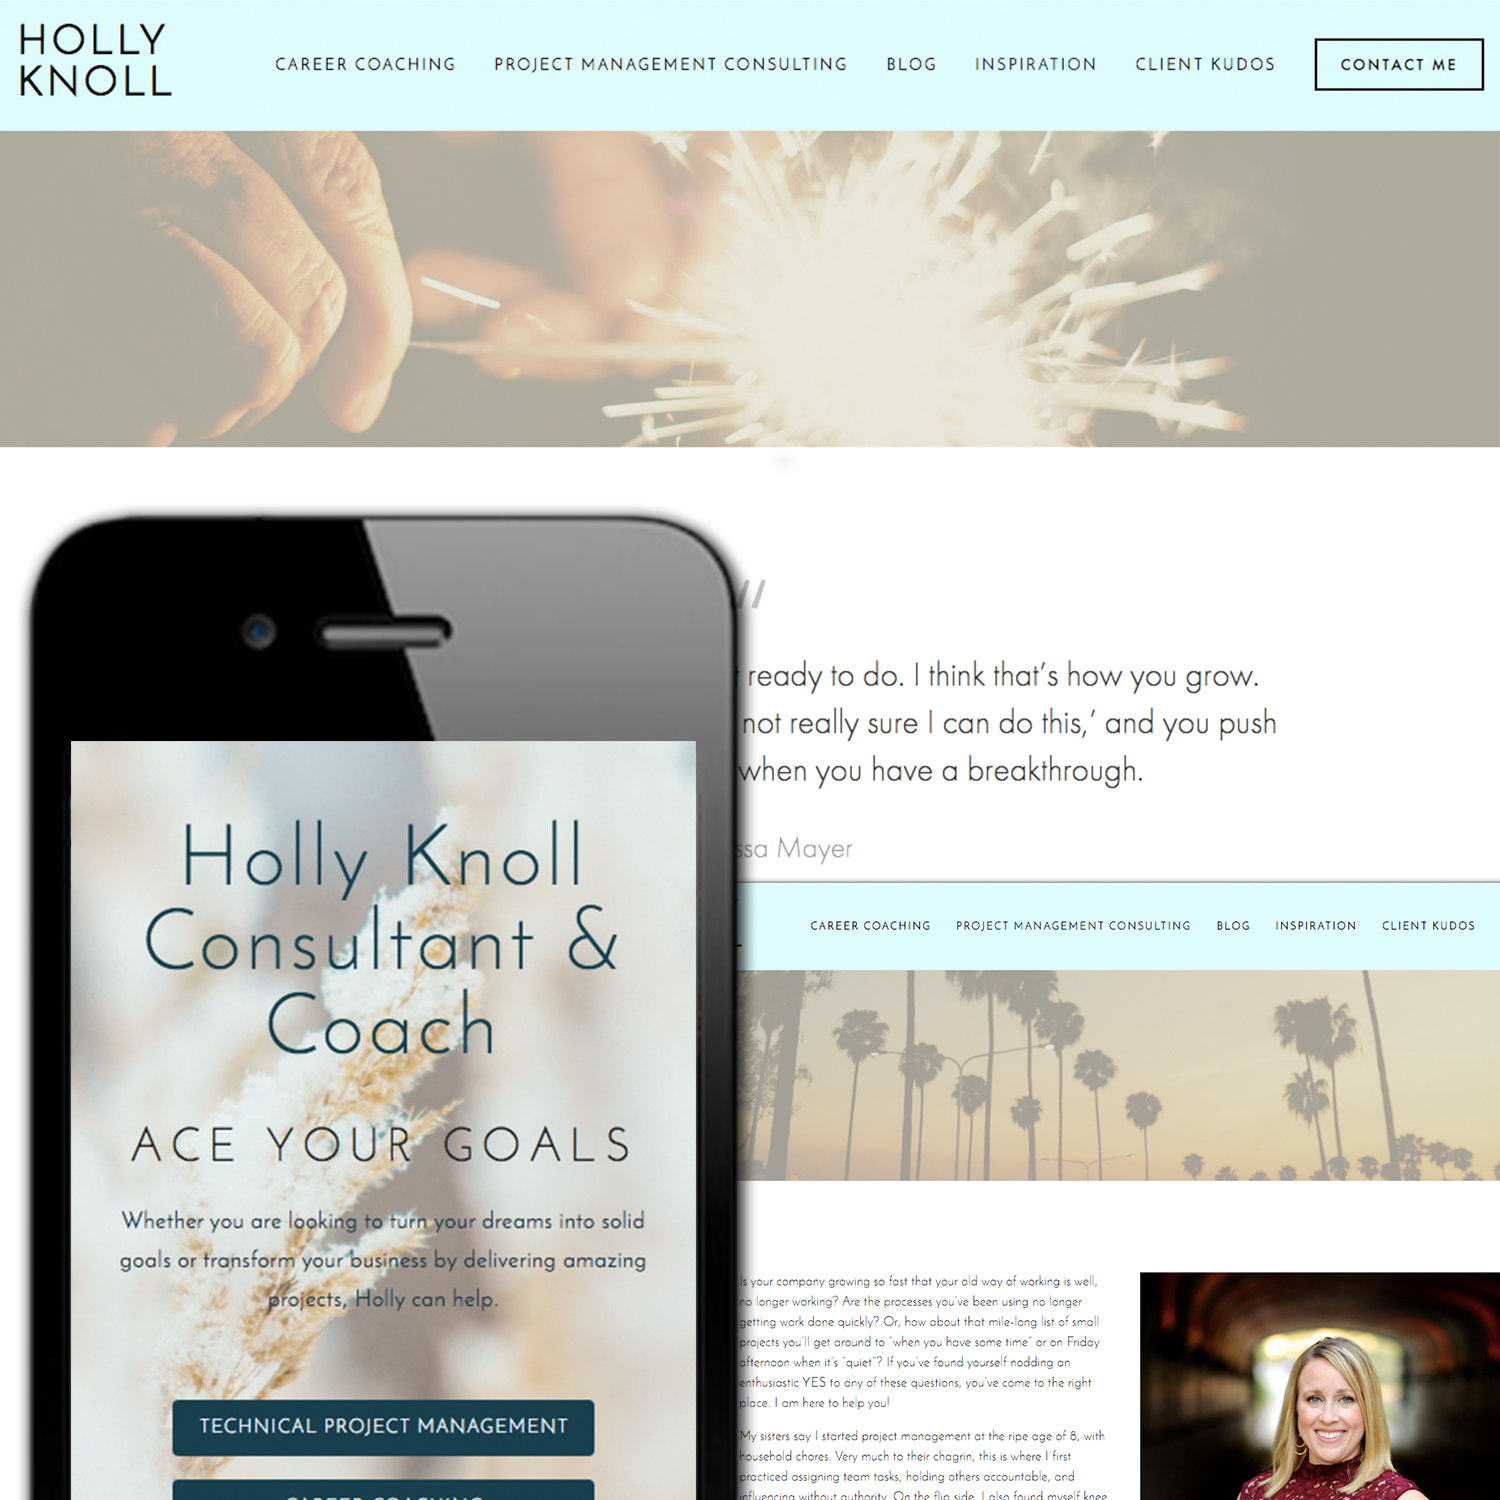 Holly Knoll Consultant & Coach